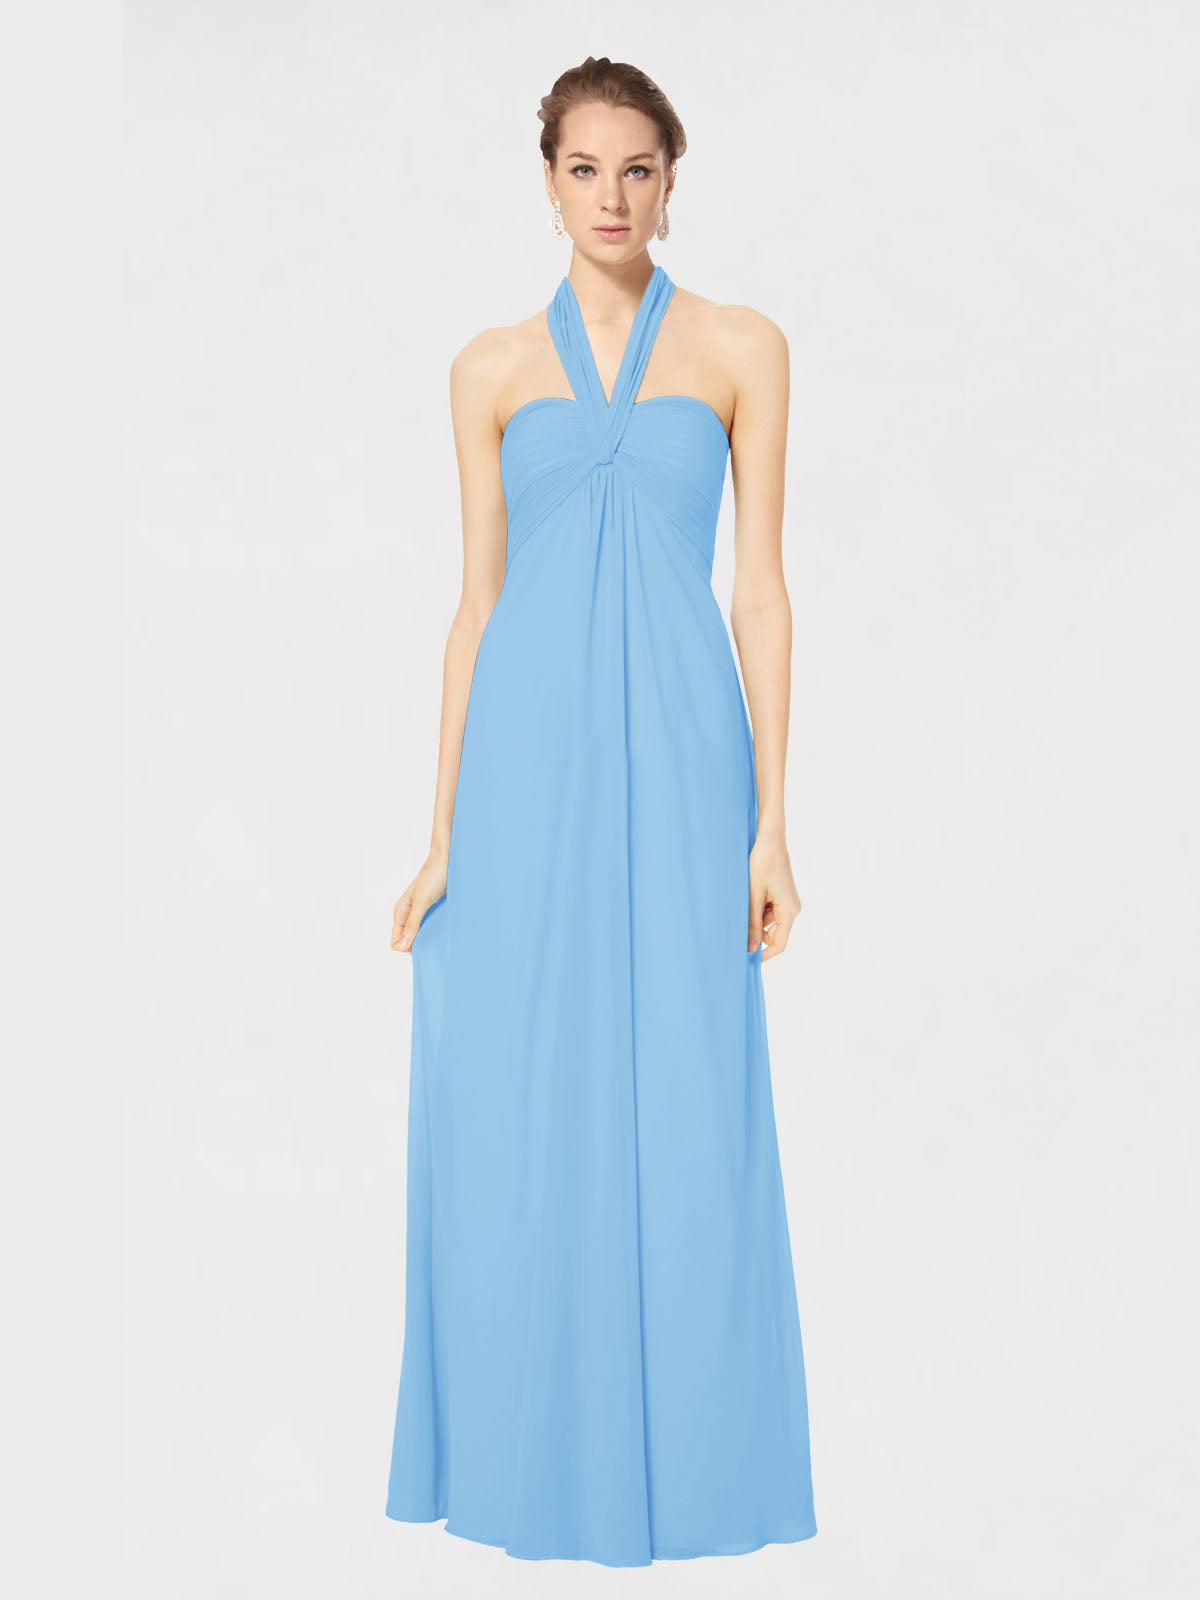 Long Empire Halter Sleeveless Periwinkle Chiffon Bridesmaid Dress Kennedy